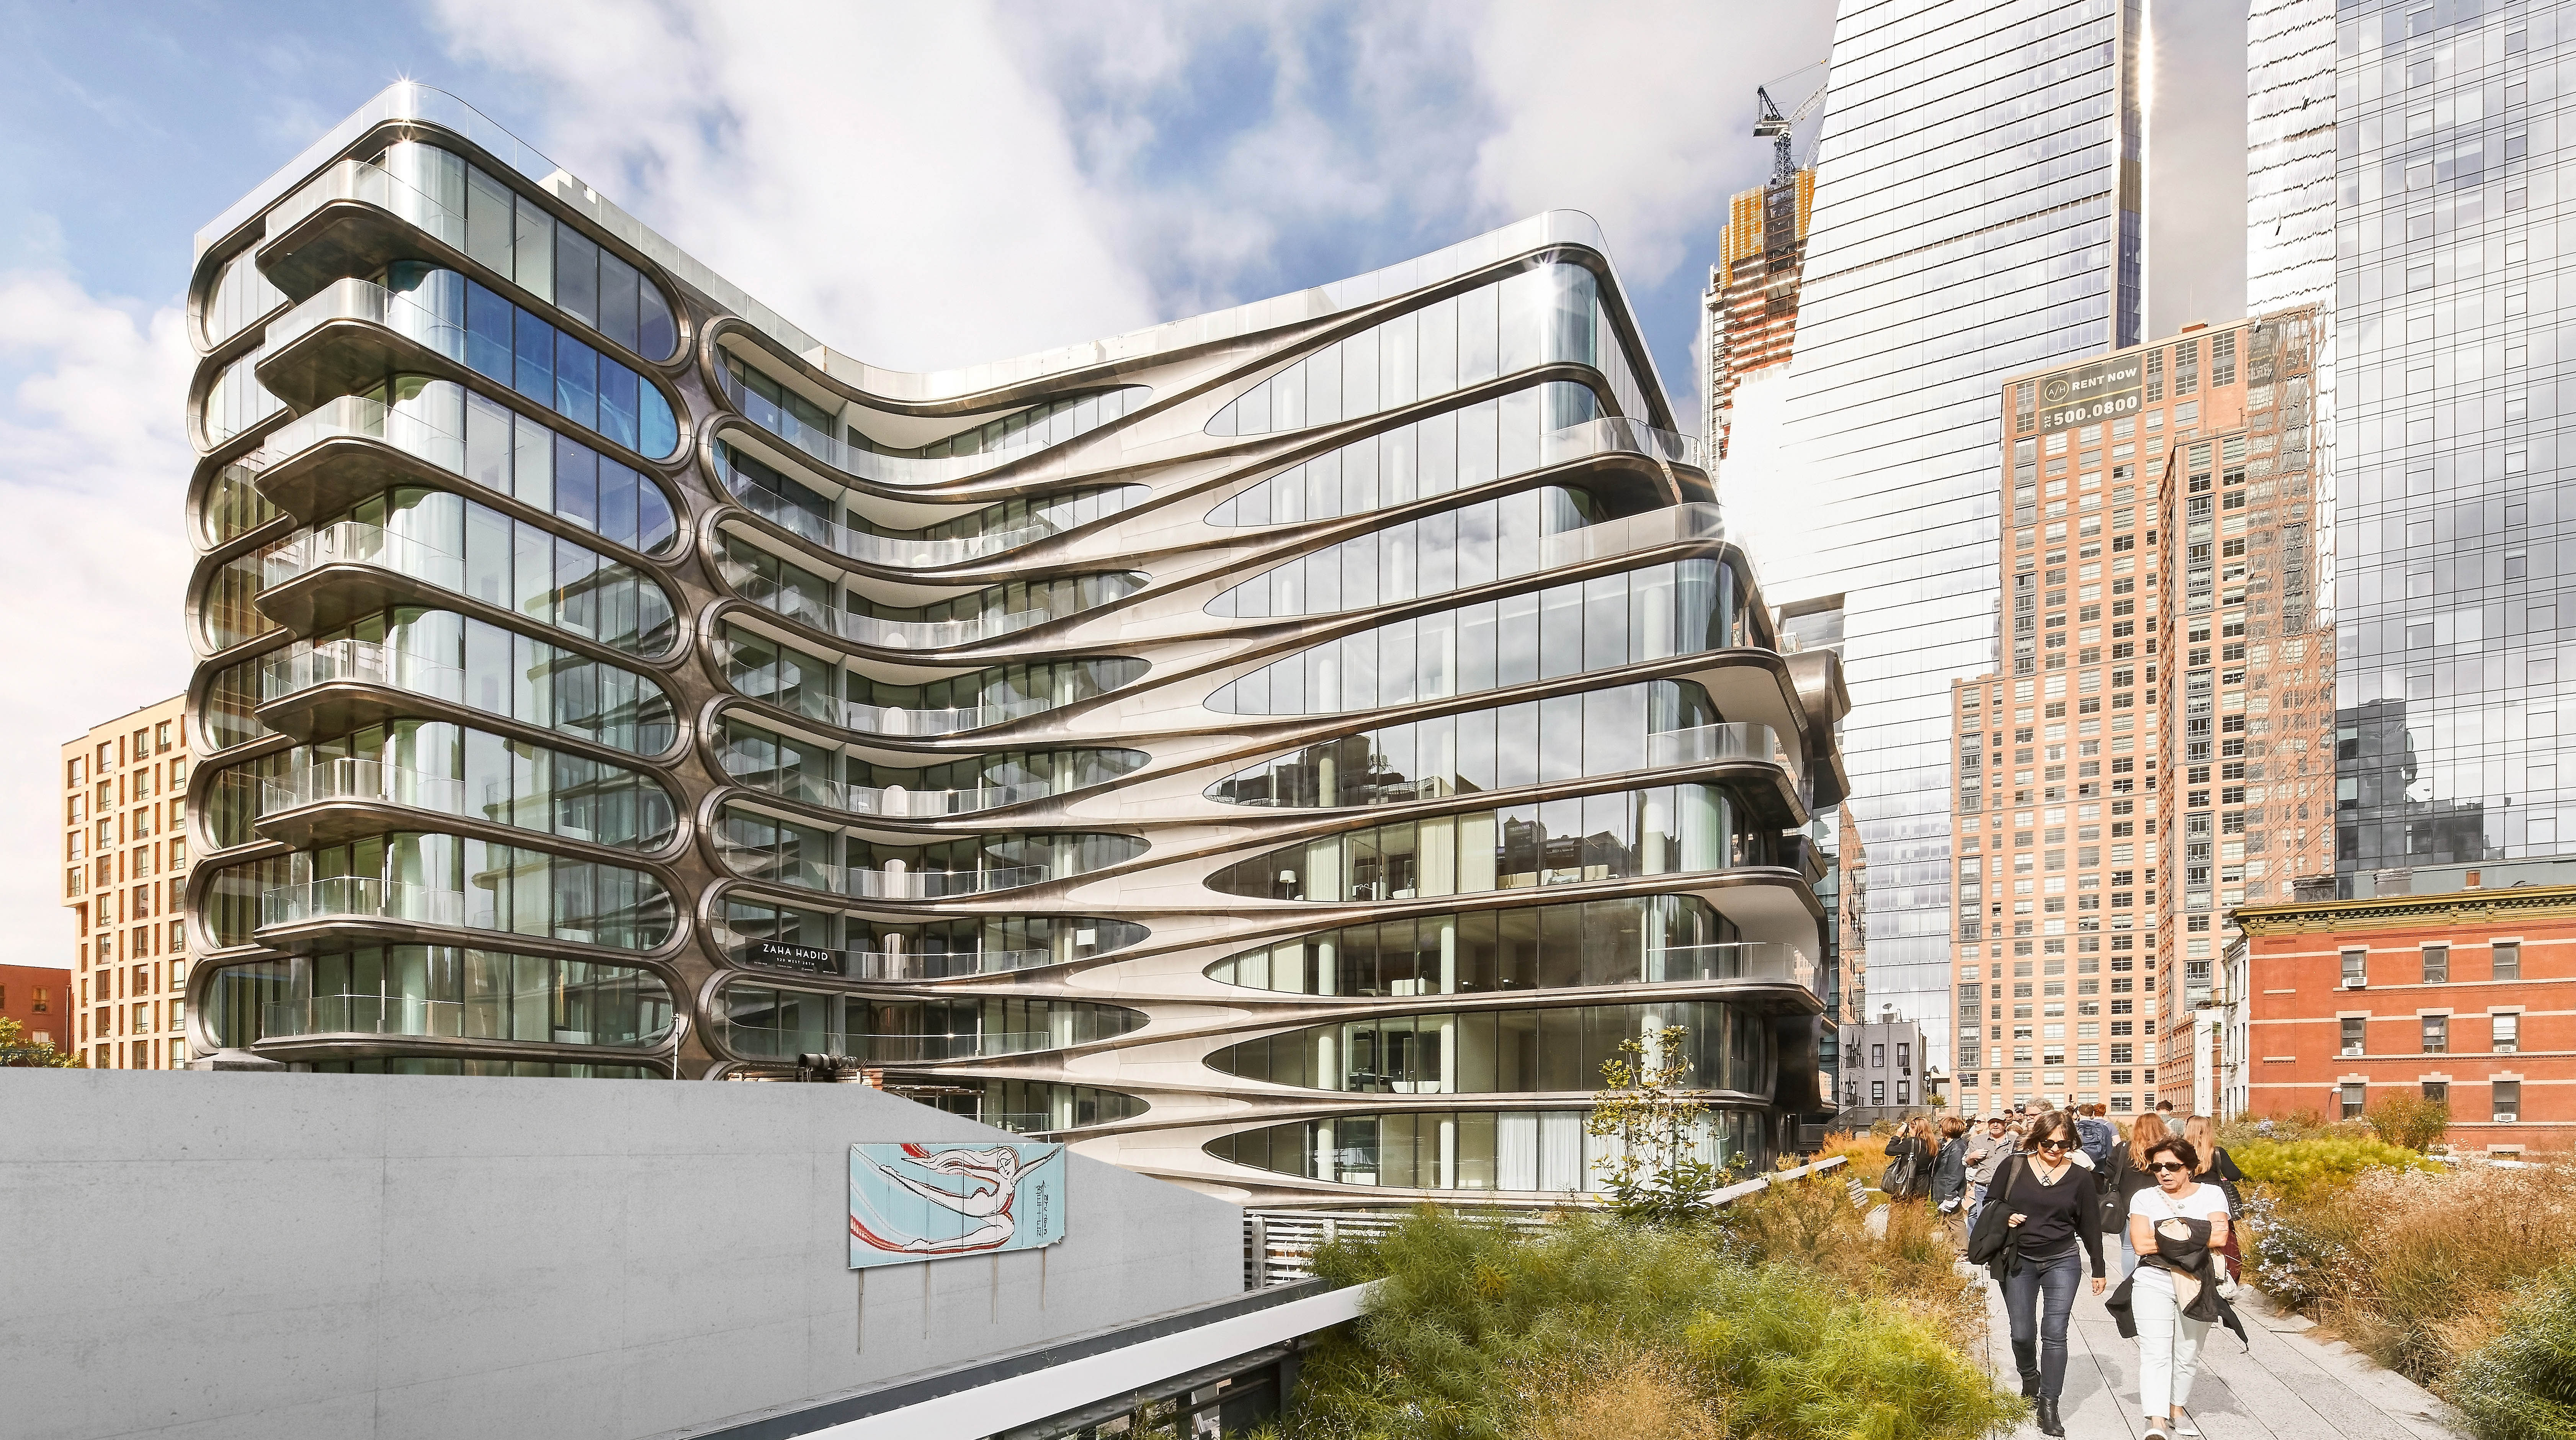 520 West 28th Street, New York - View of the Zaha Hadid designed building from the Highline